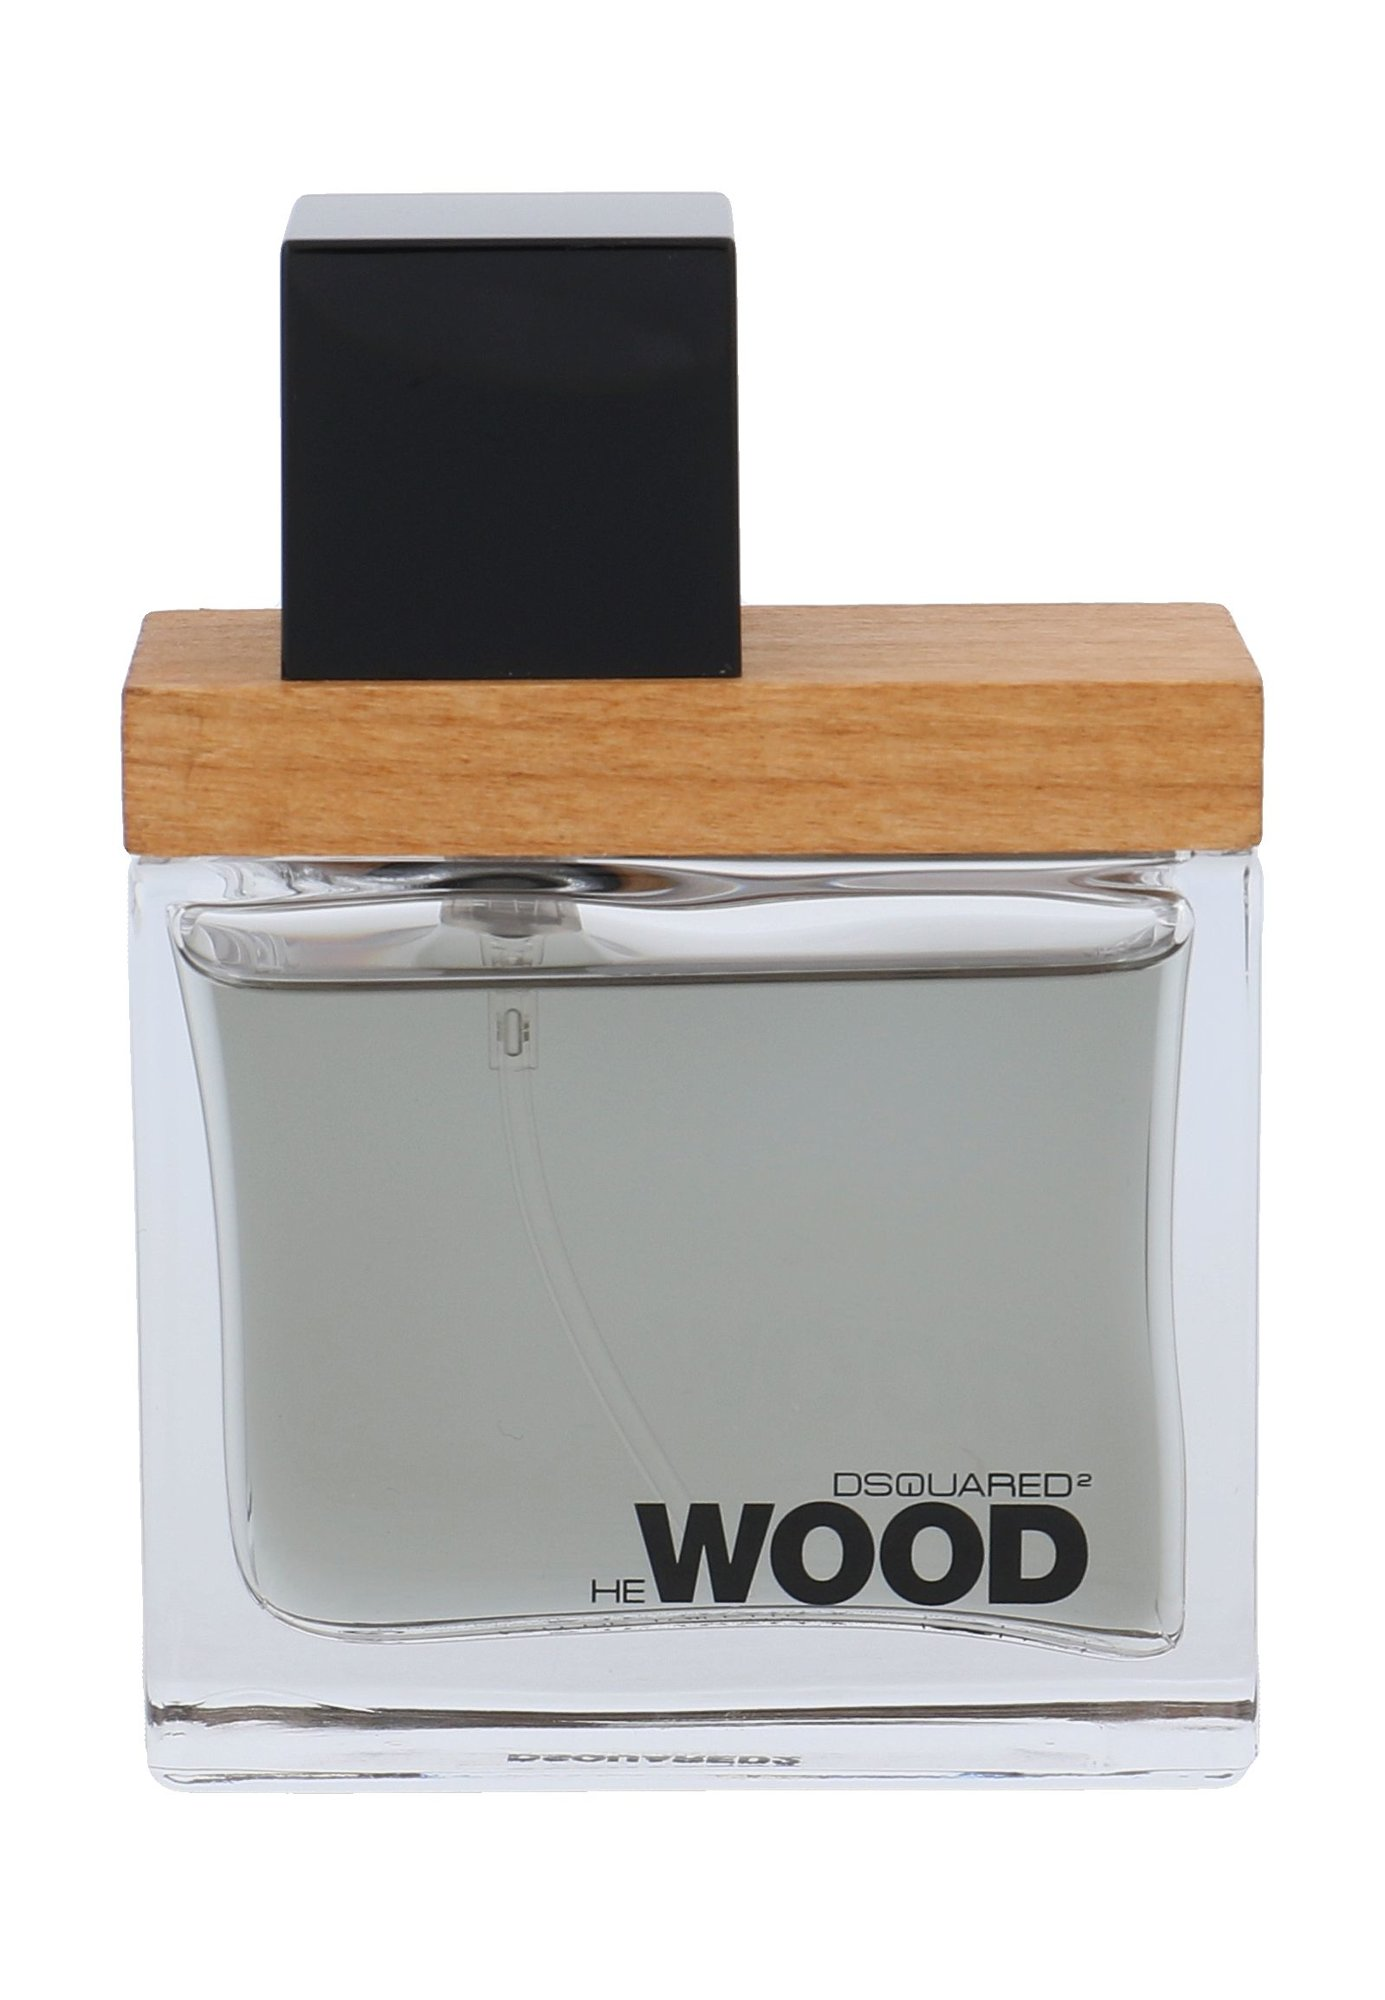 Dsquared2 He Wood EDT 30ml